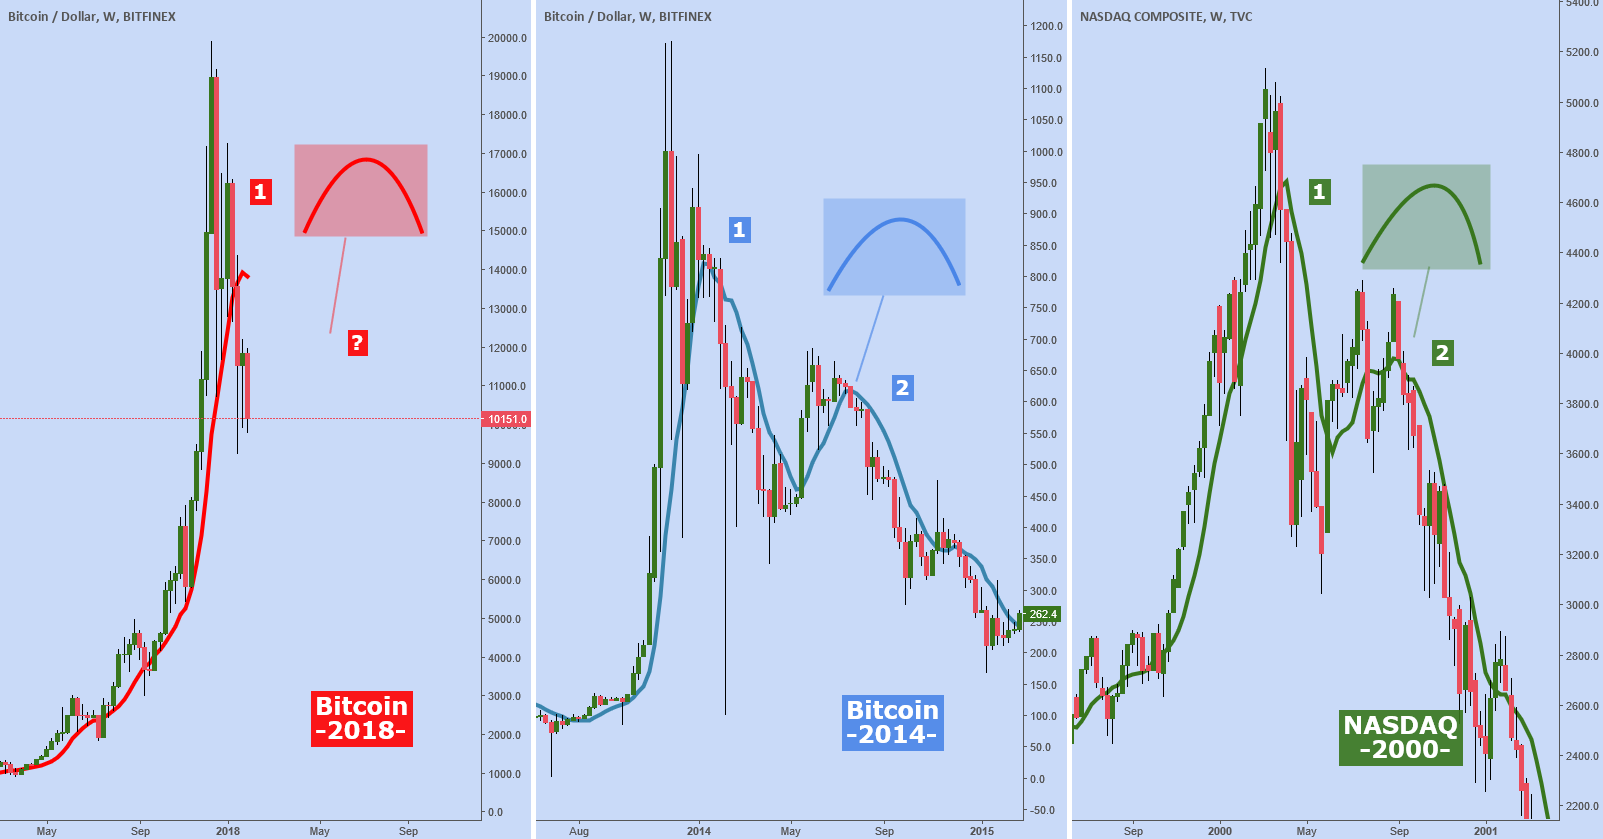 Comparison: BTC 2018 vs. BTC 2014 vs. NASDAQ